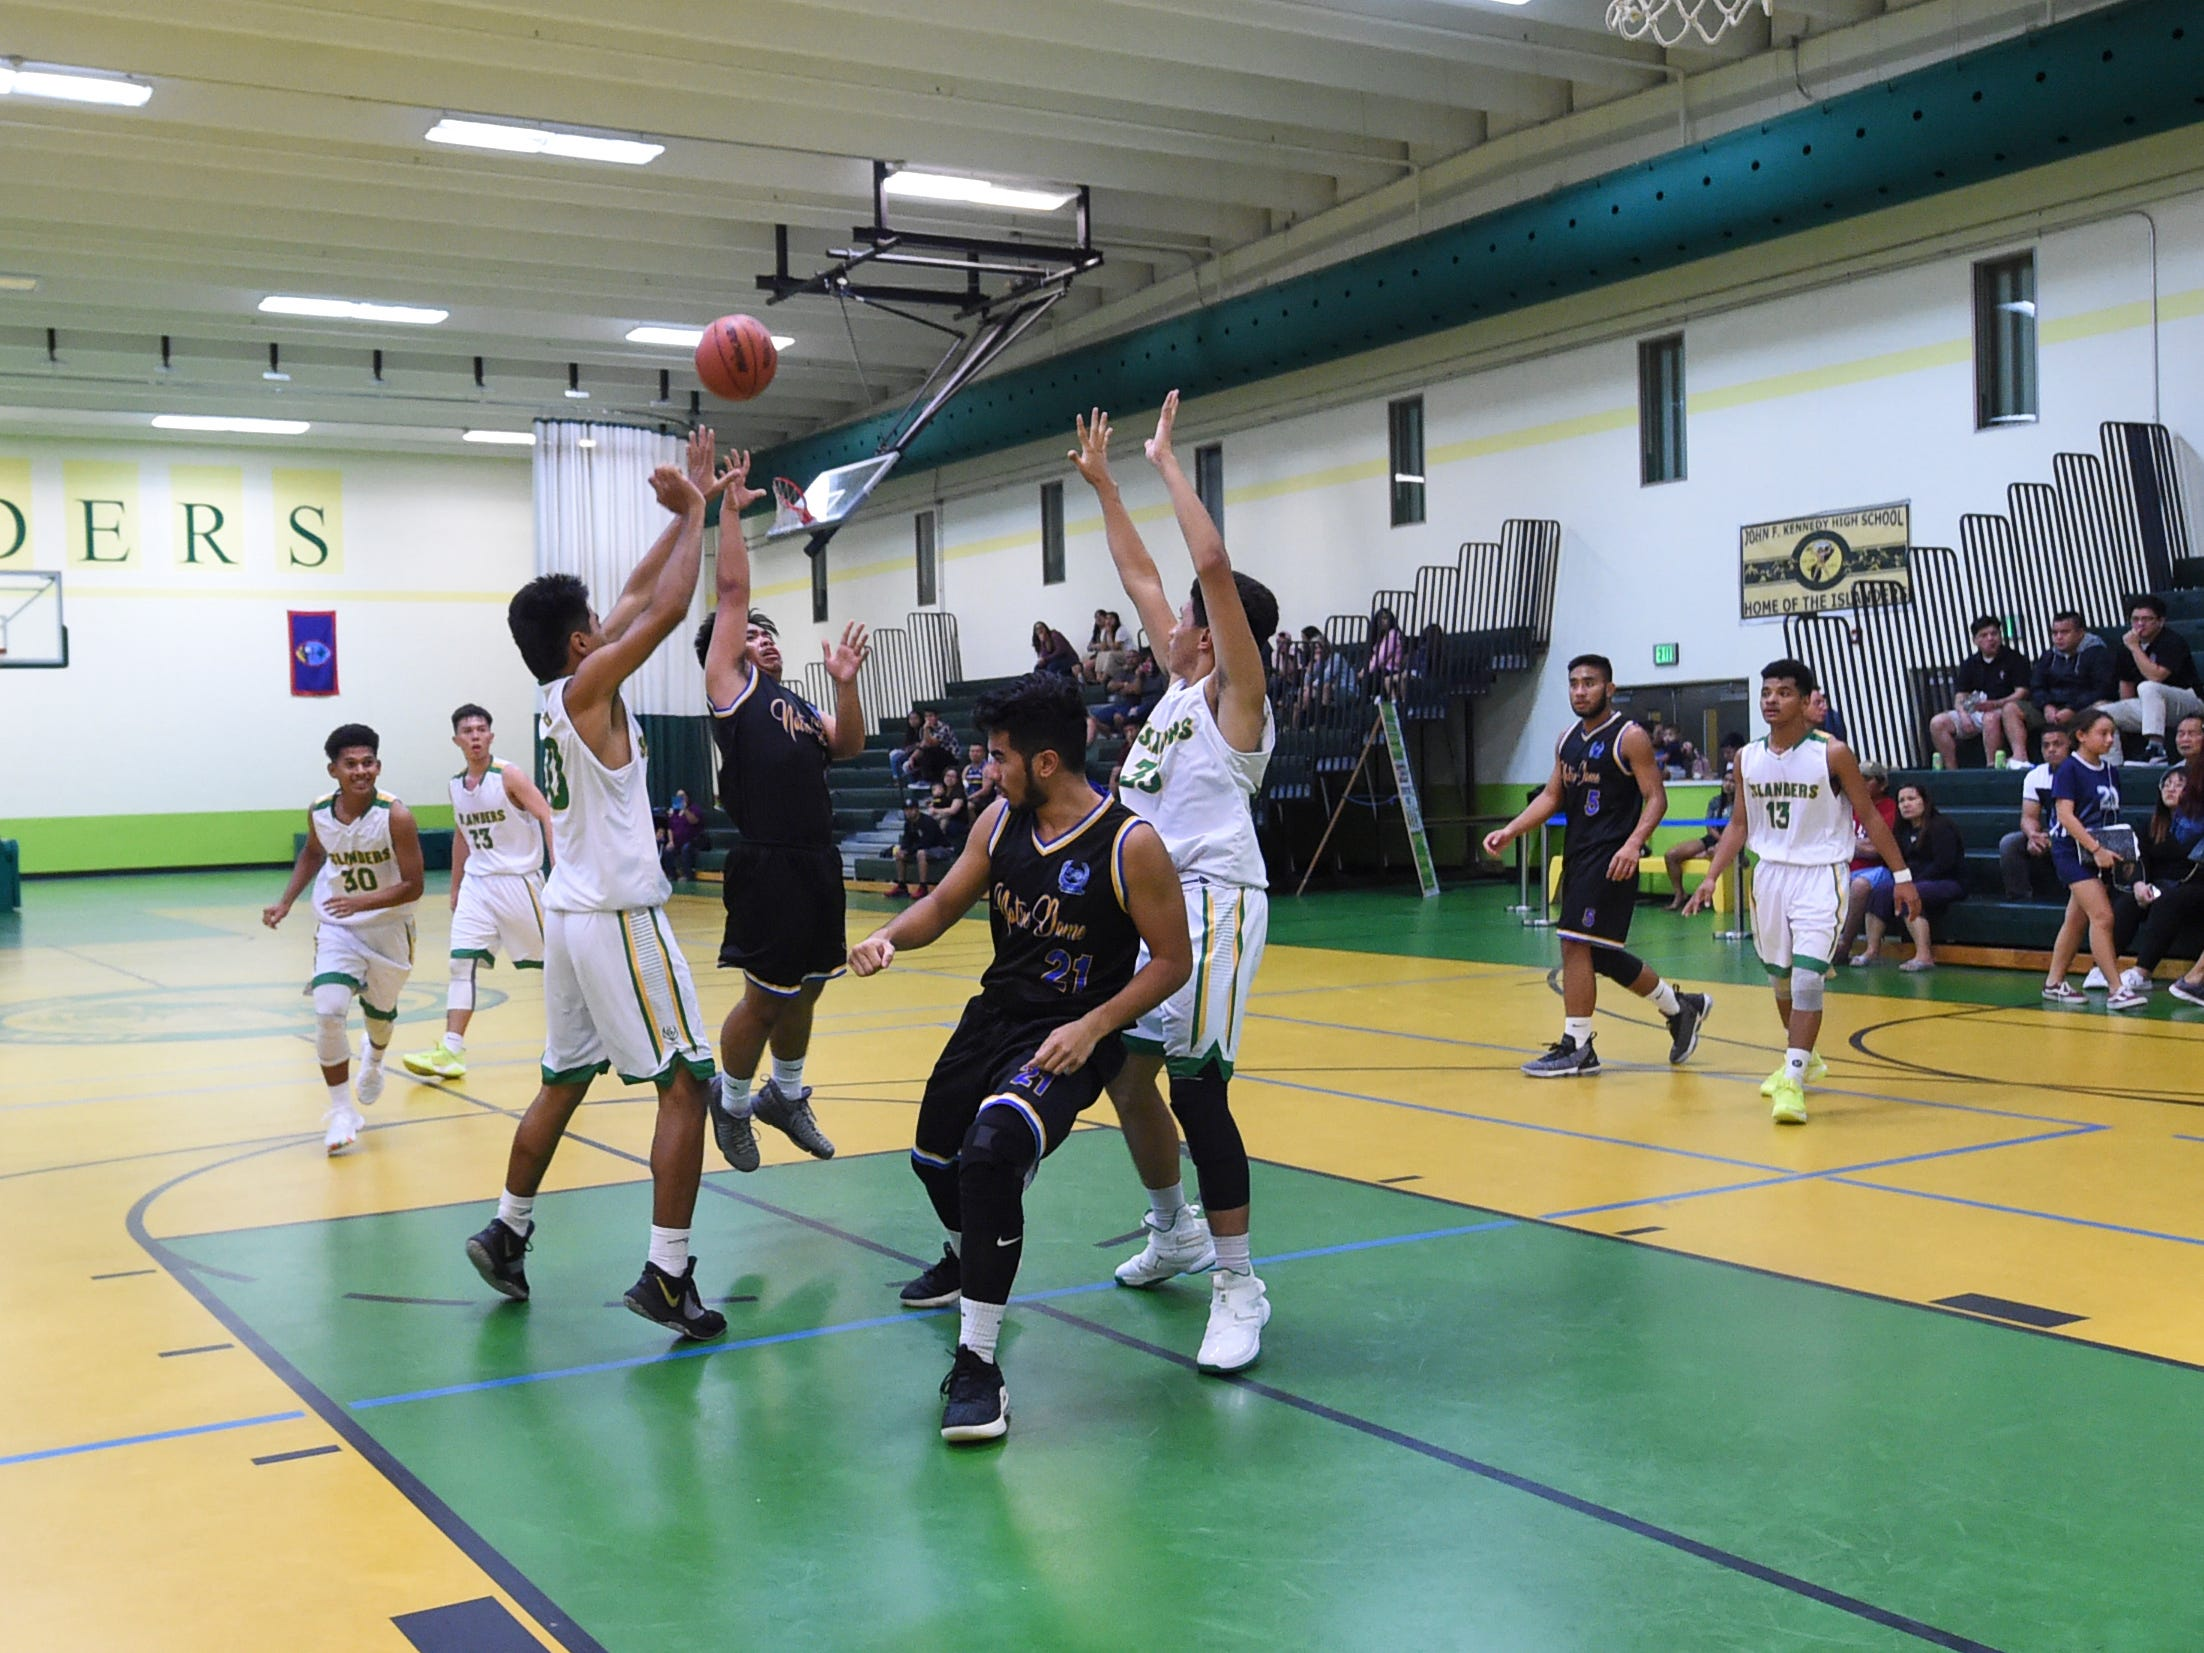 Notre Dame player Dean Diras attempts a floater against the John F. Kennedy Islanders during their Independent Interscholastic Athletic Association of Guam Boys' Basketball game at the JFK High School Gym, Feb. 2, 2019.